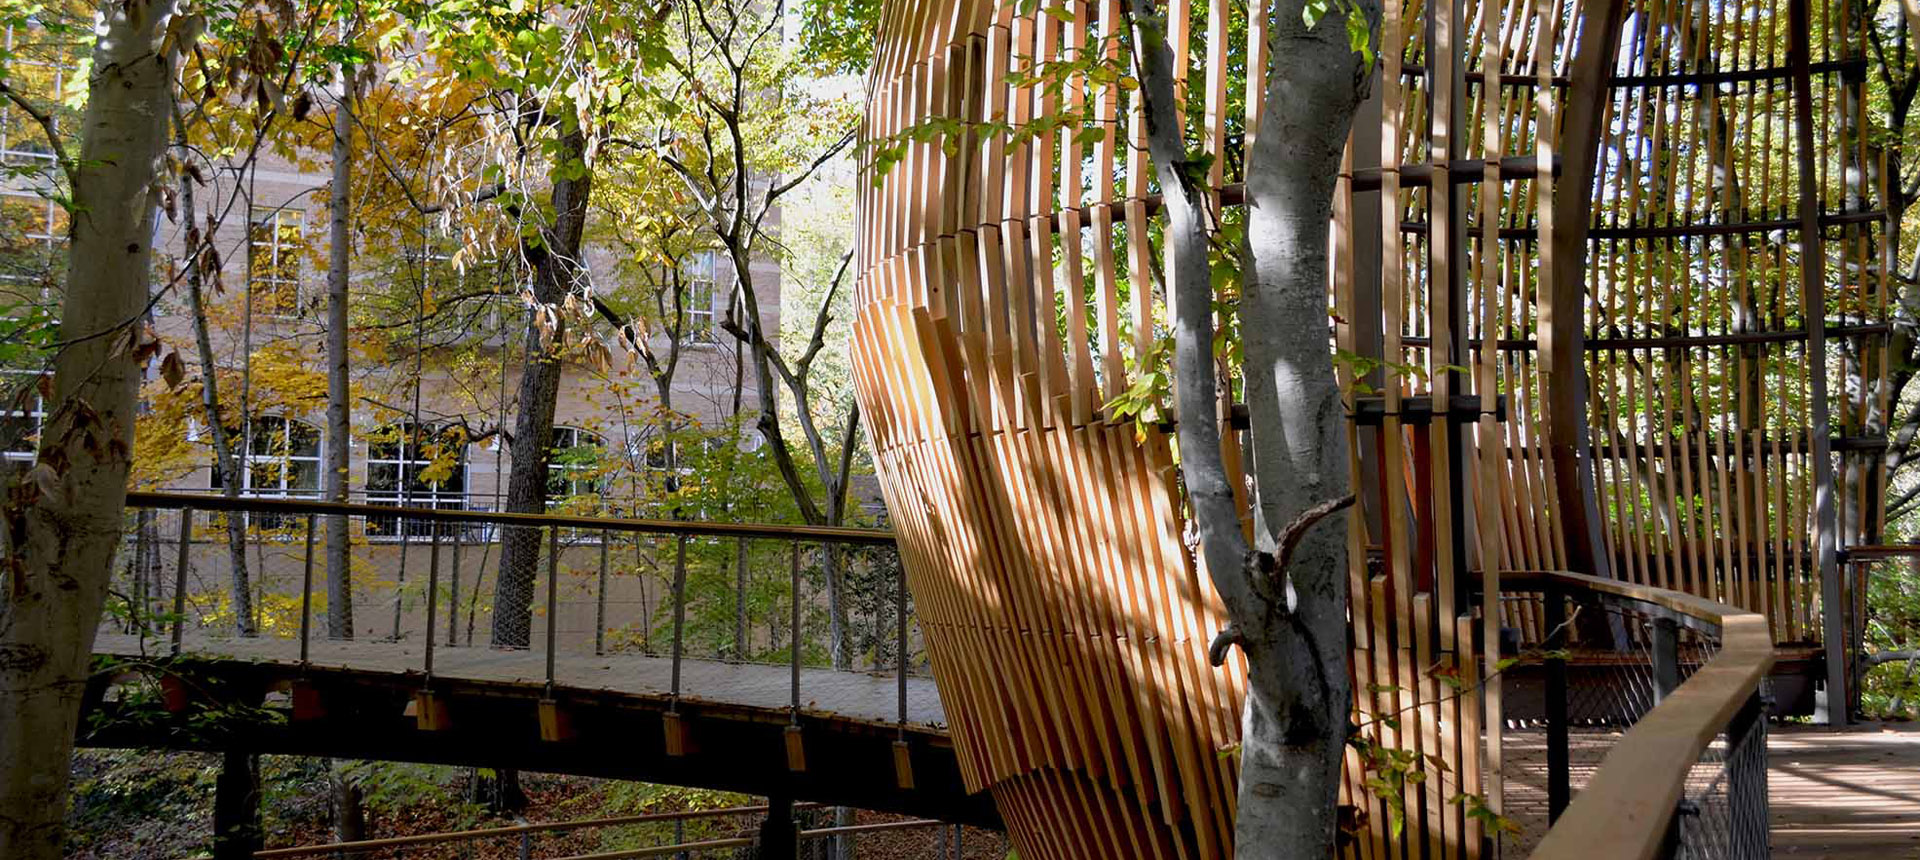 Fernbank Museum of Natural History - Canopy and Walking Bridge